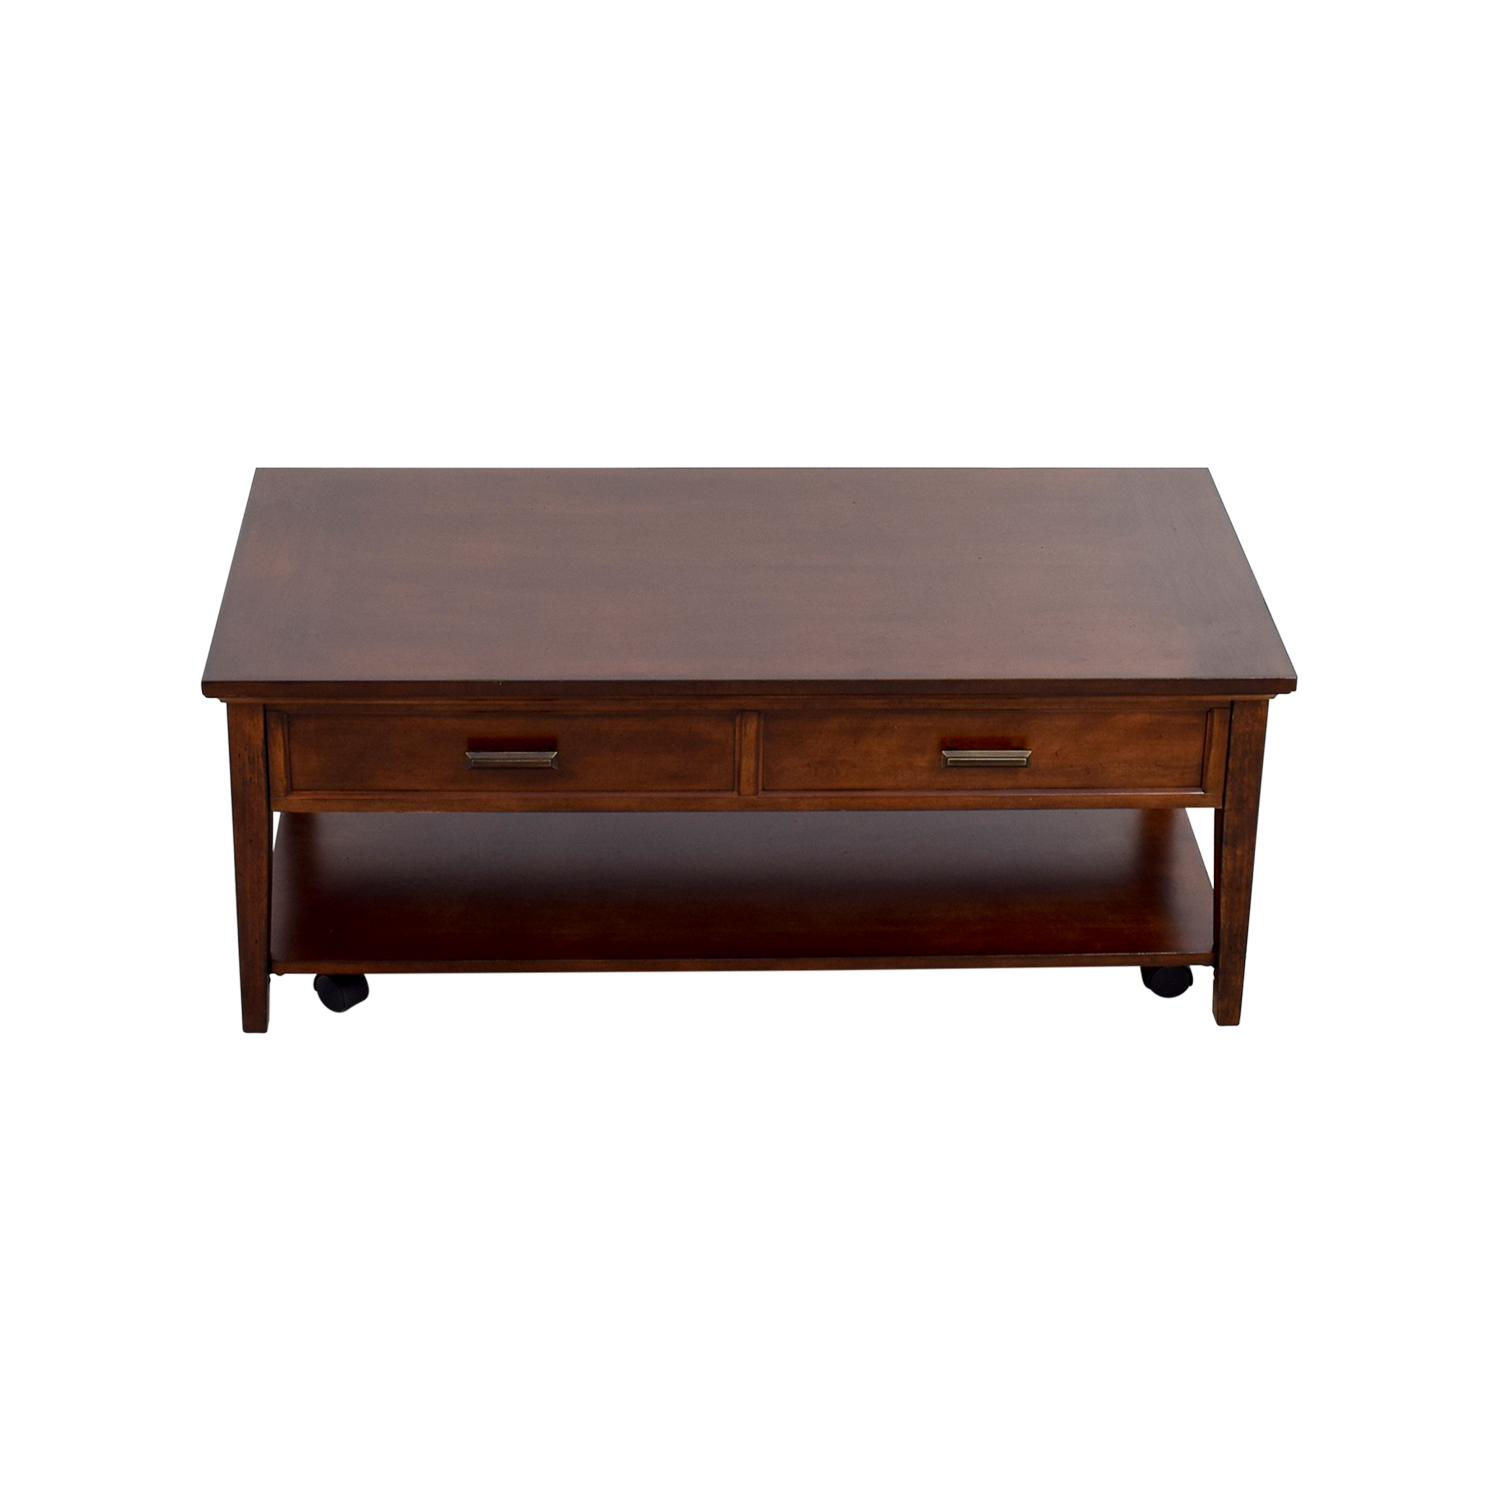 Raymour & Flanigan Raymour & Flanigan Harbour Bay Lift-top Coffee Table discount